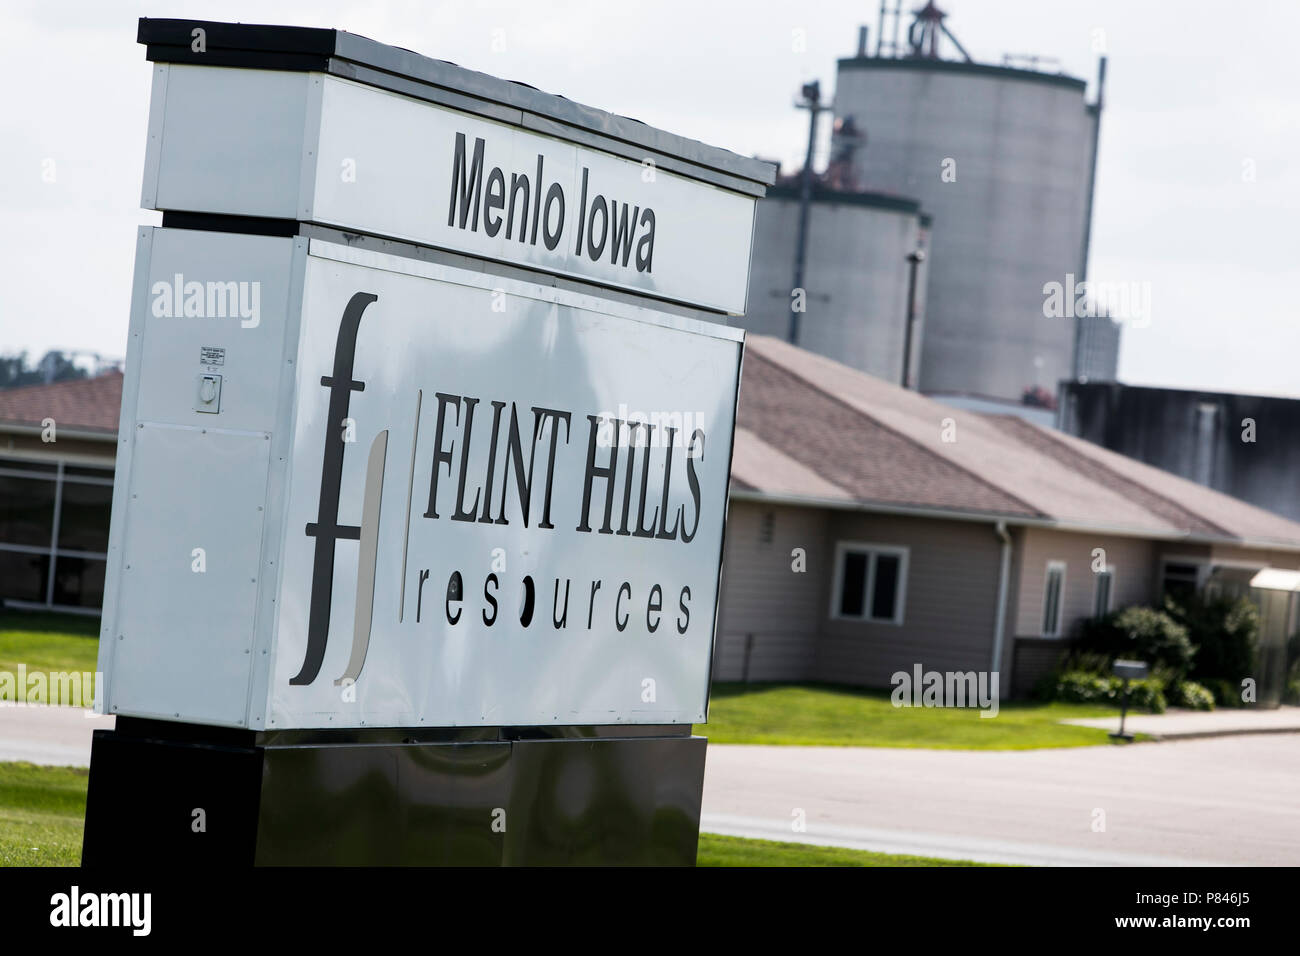 A logo sign outside of a facility occupied by Flint Hills Resources in Menlo, Iowa, on June 30, 2018. - Stock Image